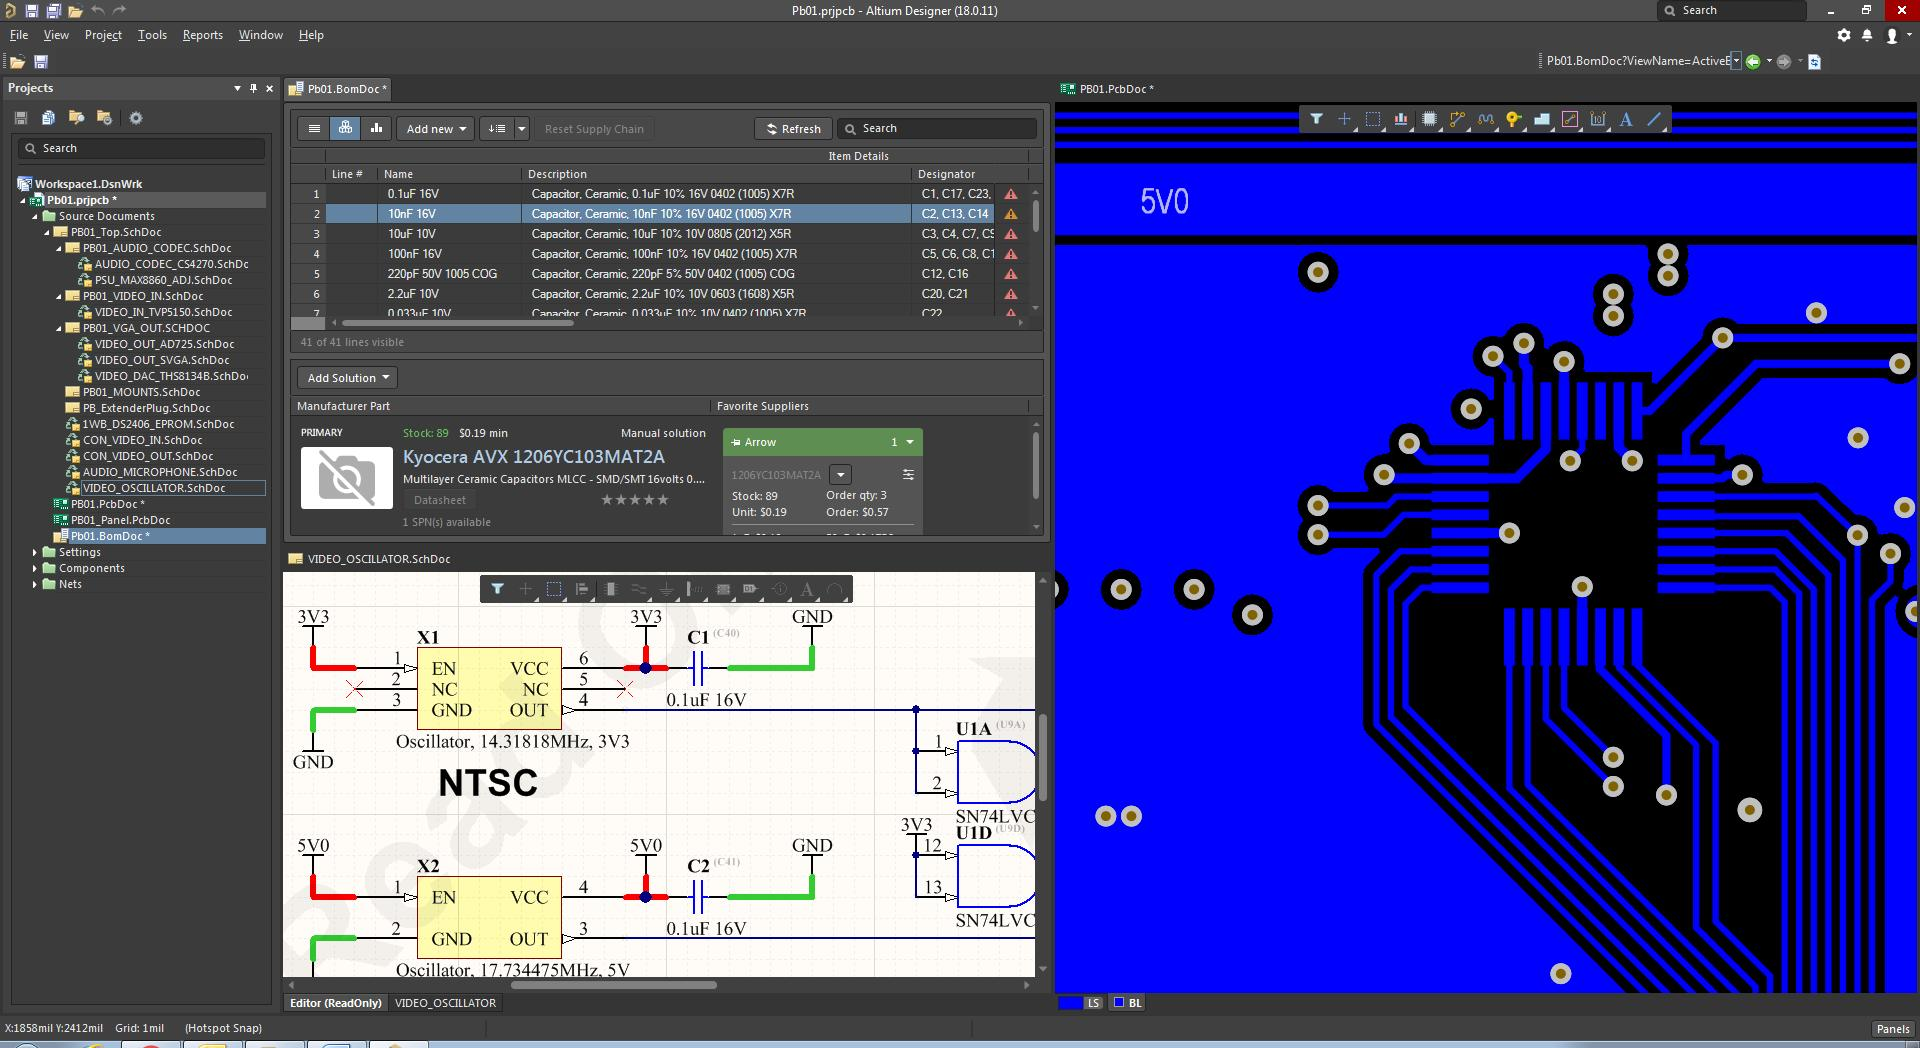 Screenshot of AD18 BOM, schematic, and layout in BOM management tool for PCB design